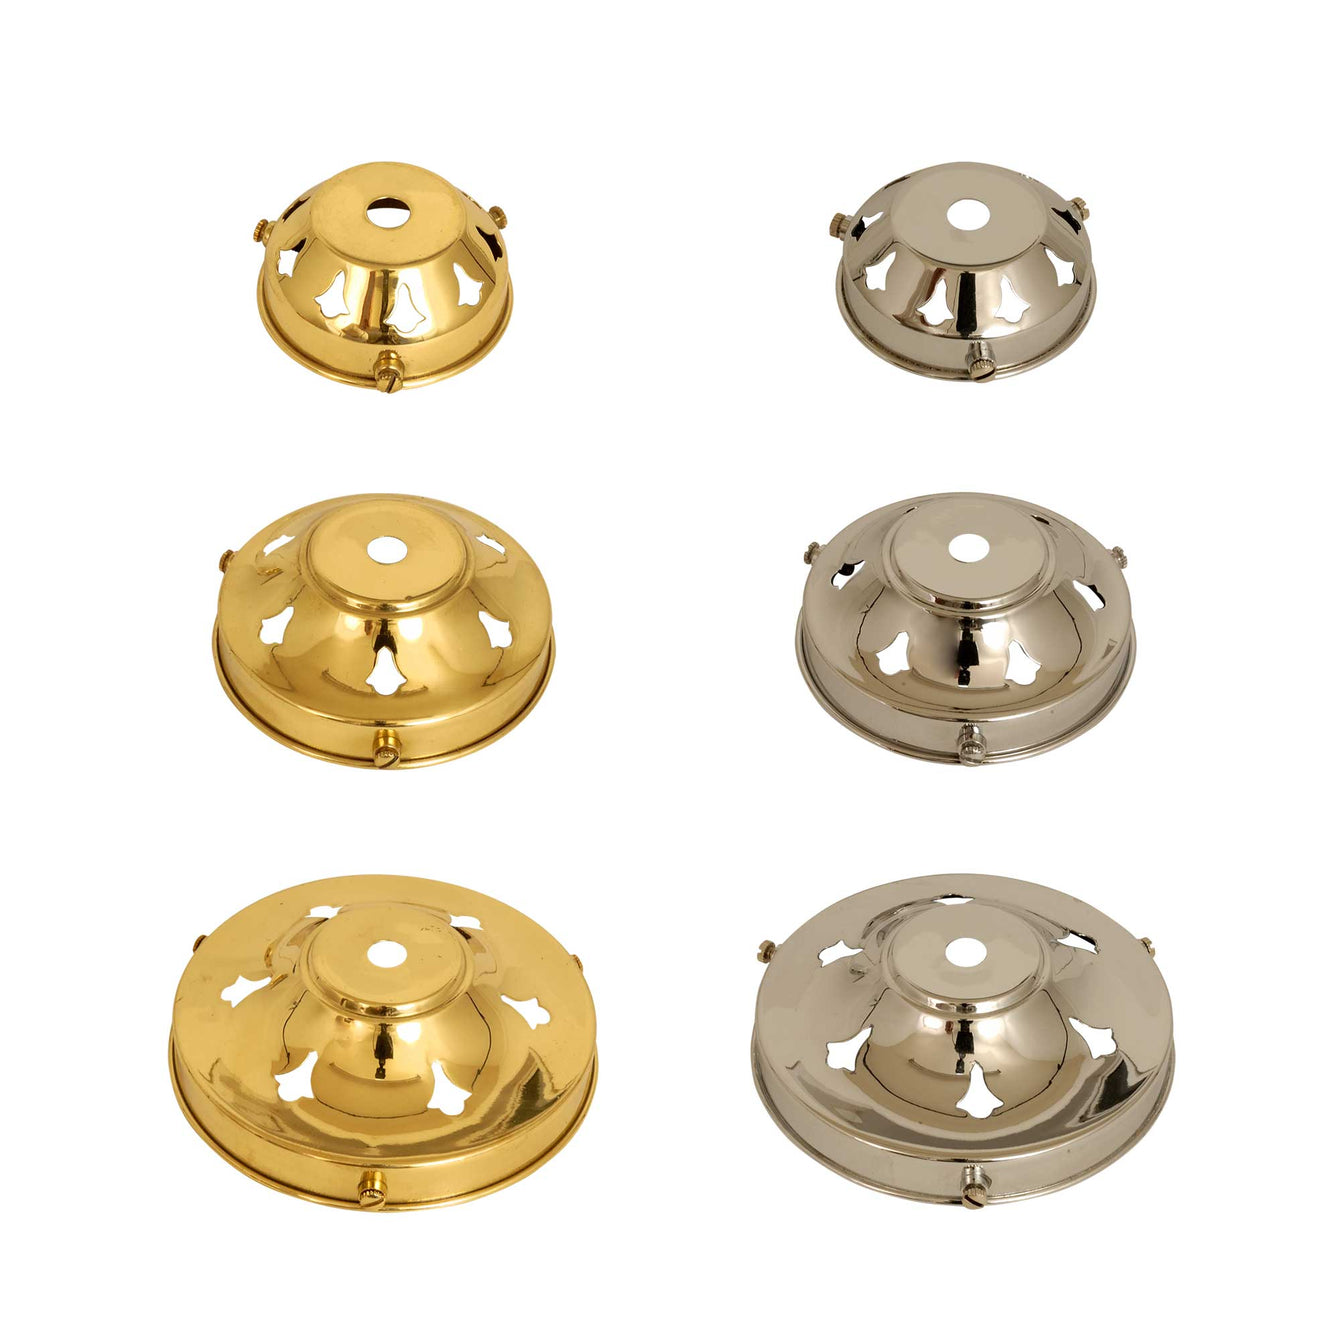 ElekTek Glass Lamp Shade Gallery Fitting for 10mm Fittings 3 Sizes Brass - Buy It Better Brass / 2.25 Inch